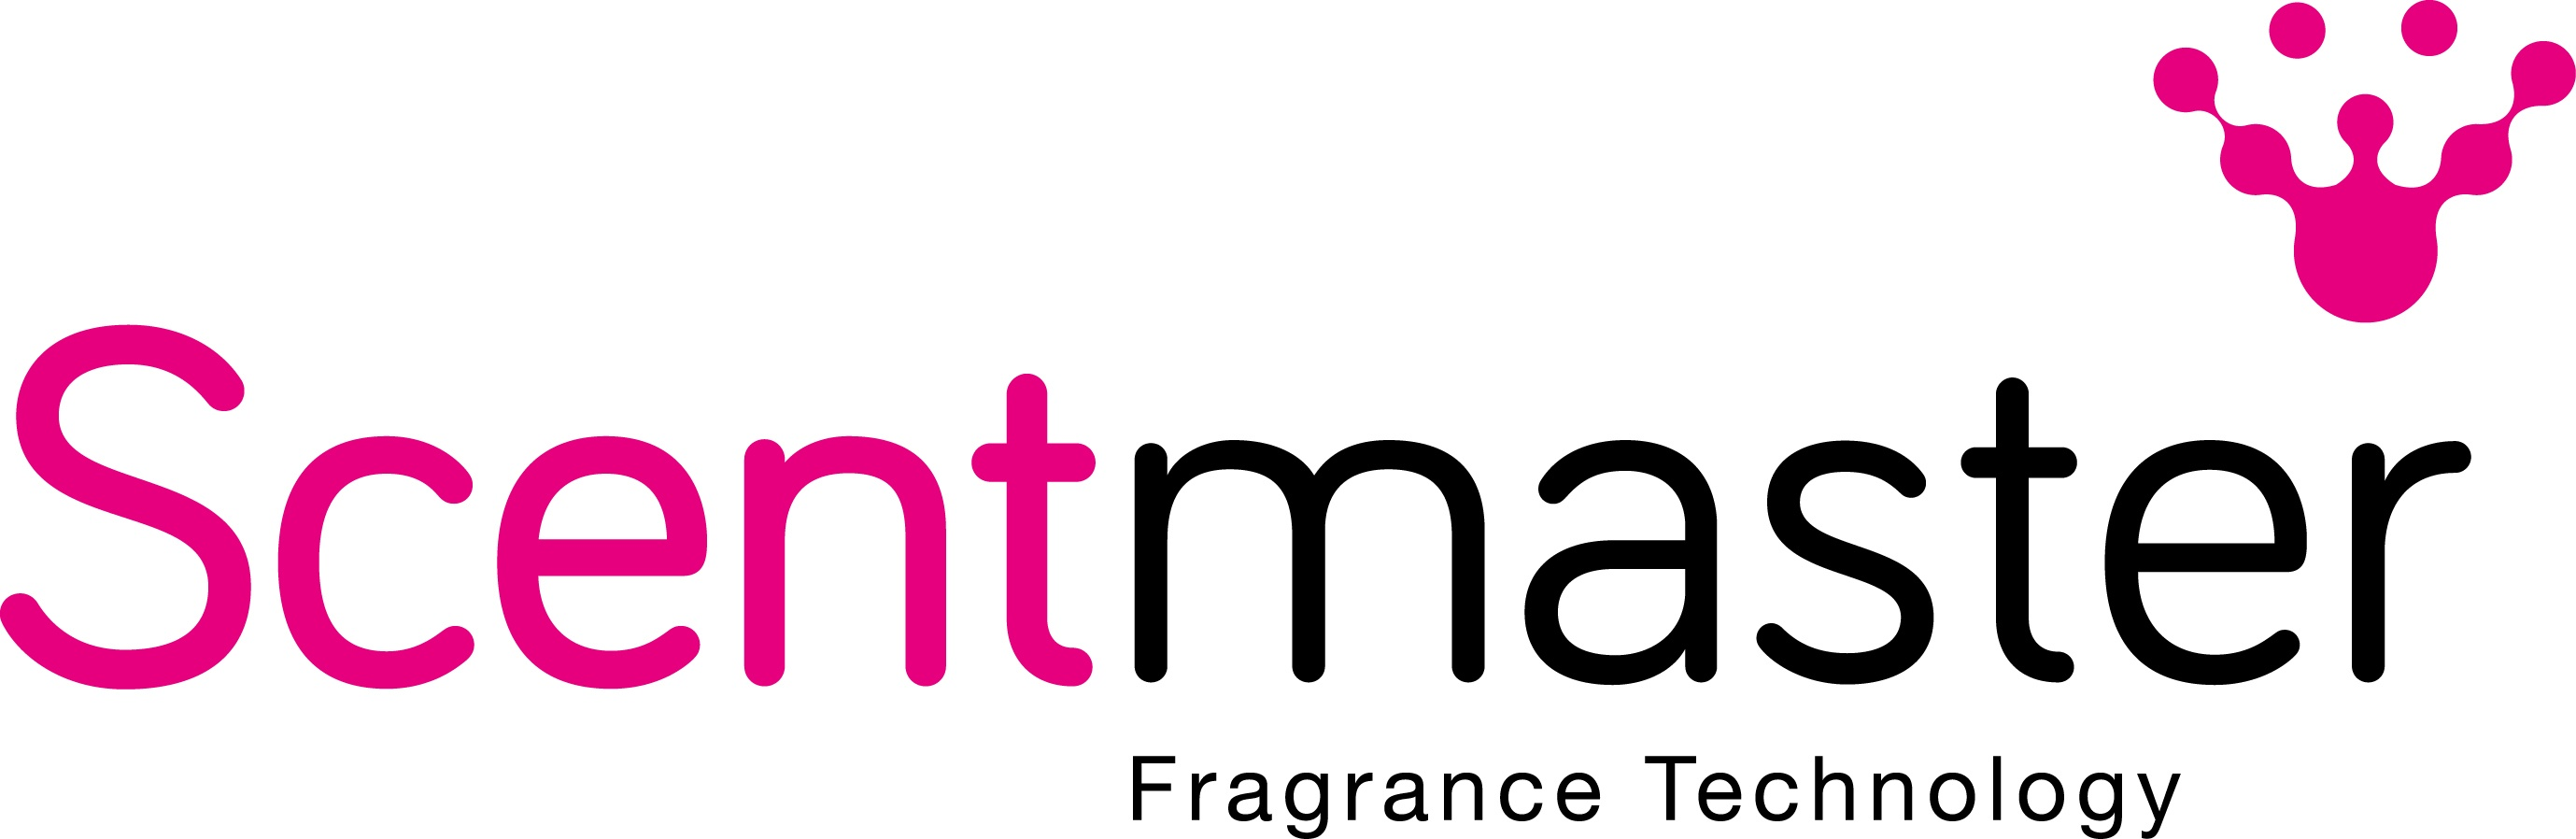 Scentmaster Fragrance Technology